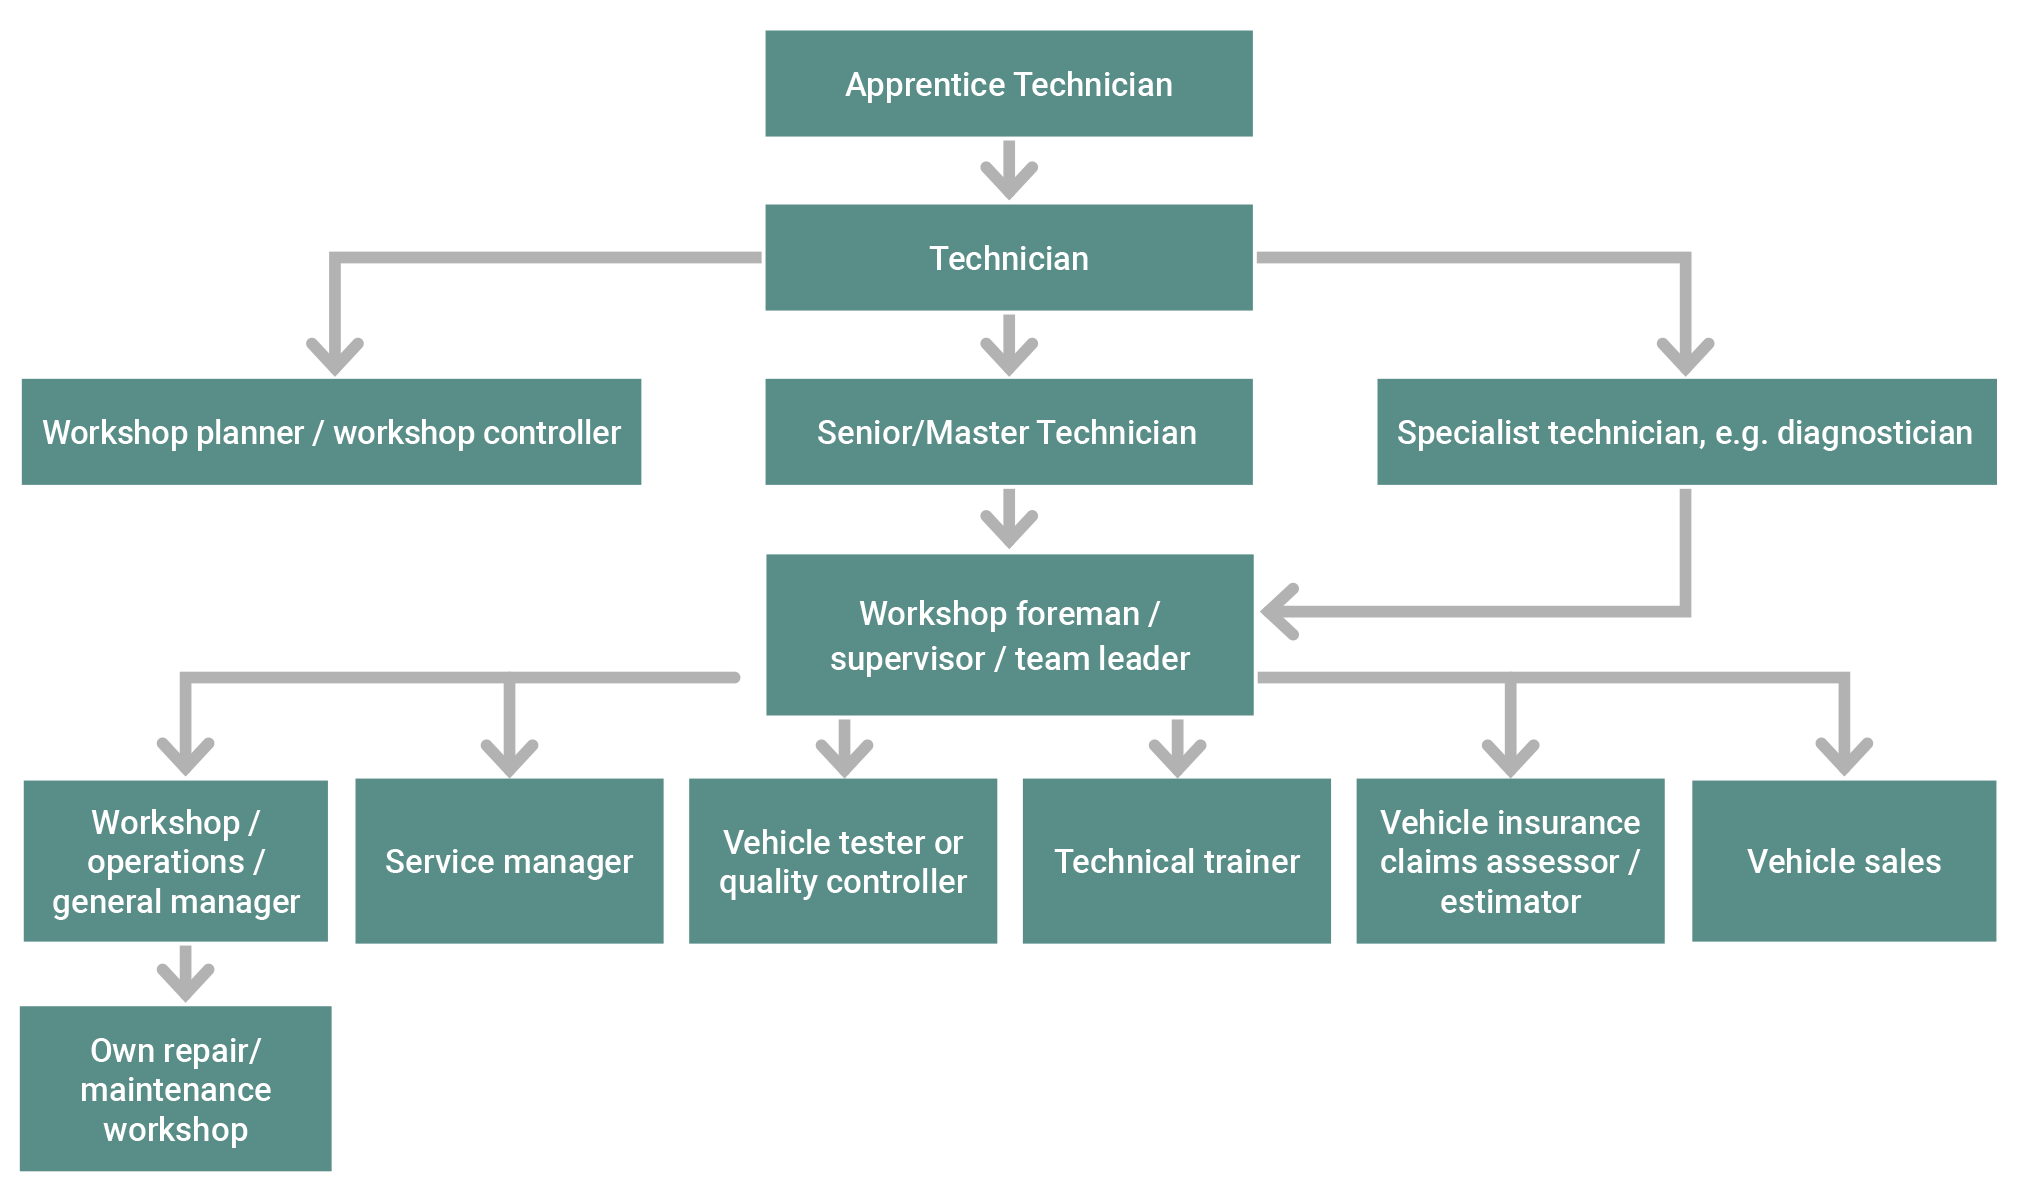 Technician or mechanic career progression options flow chart